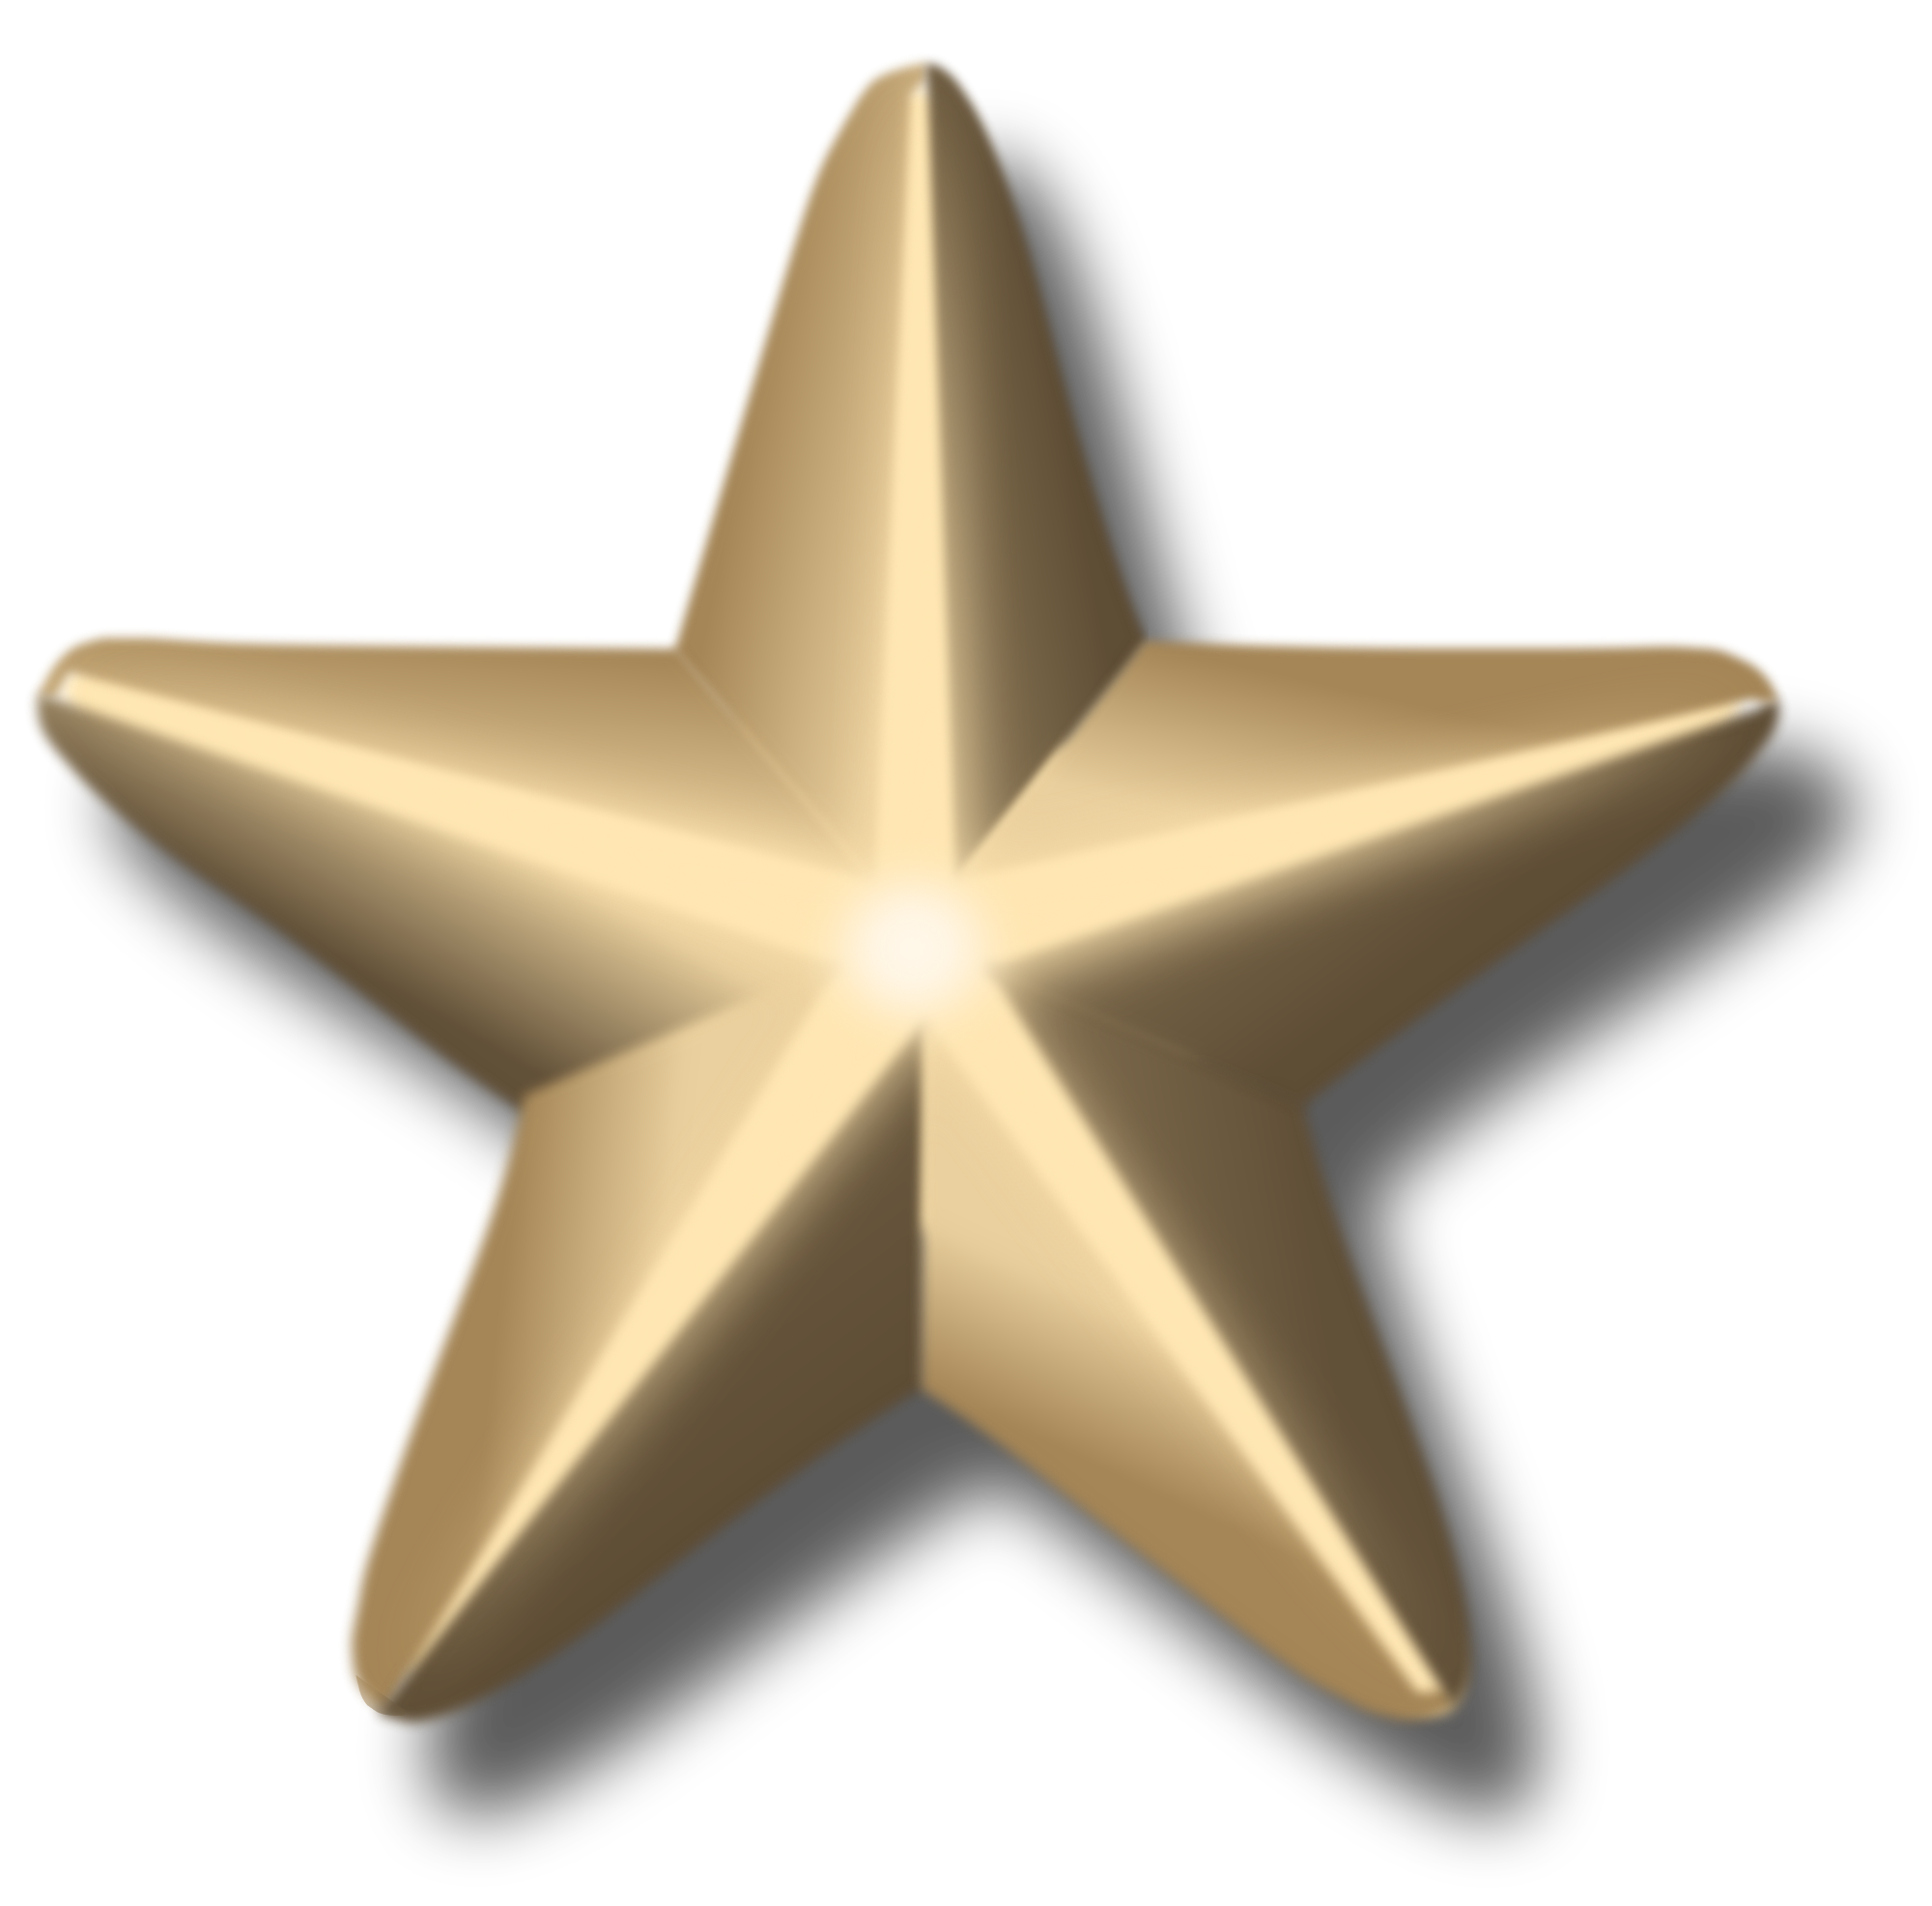 3d star clipart graphic library Free photo: 3D star - Star, Transparent, Render - Free Download - Jooinn graphic library